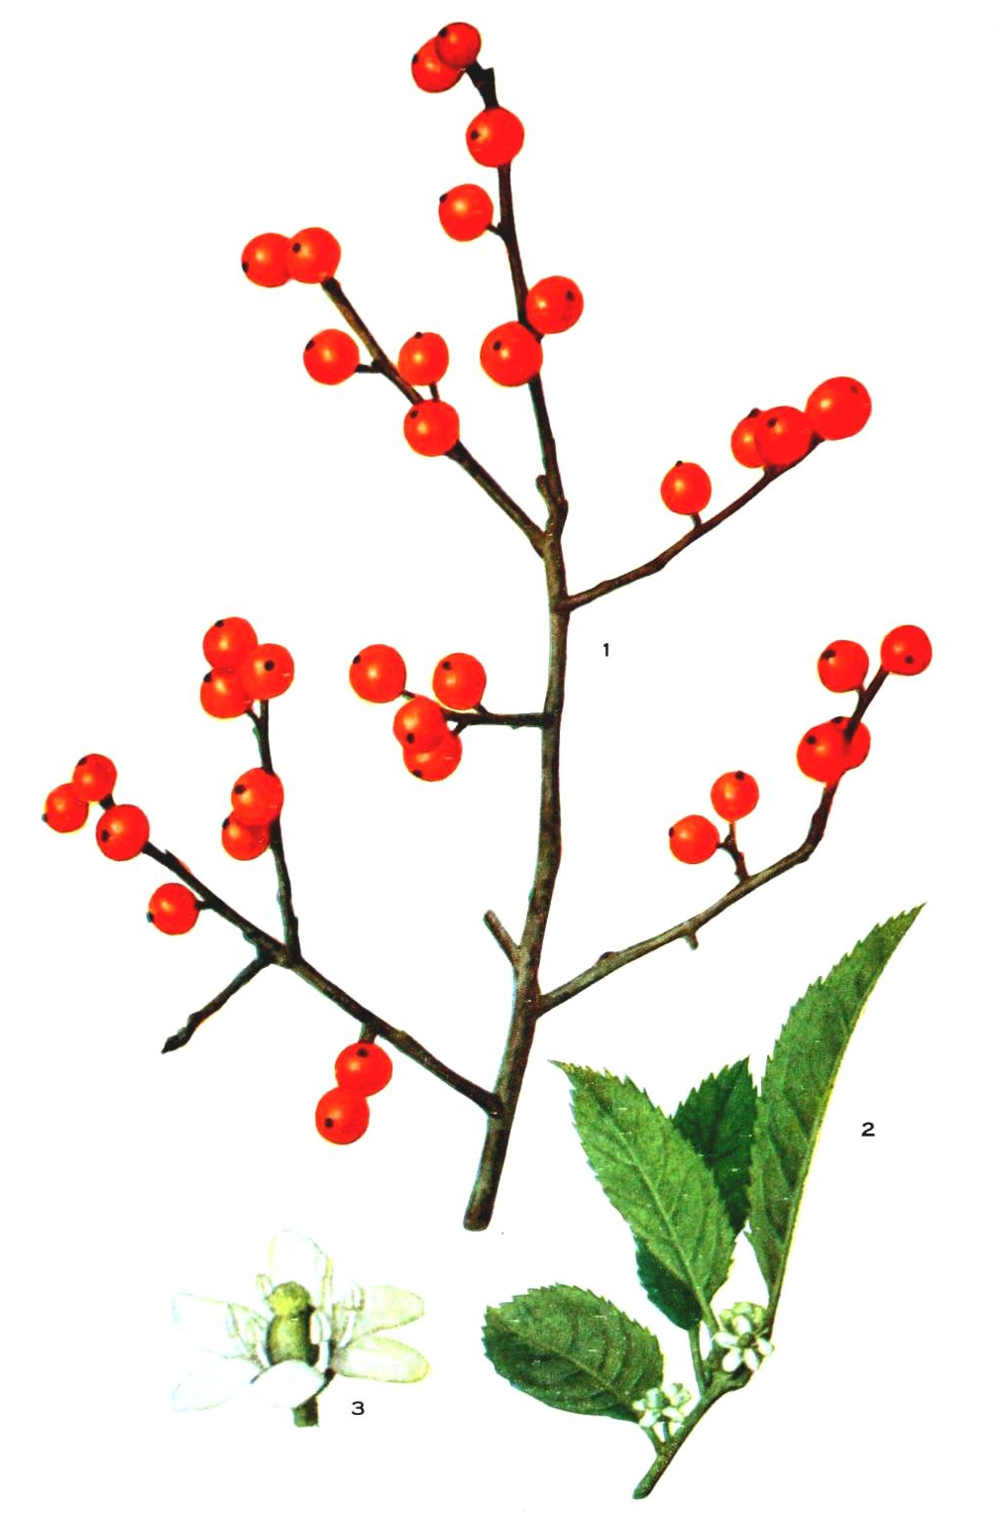 Botanical-Holly-berries-1.jpg